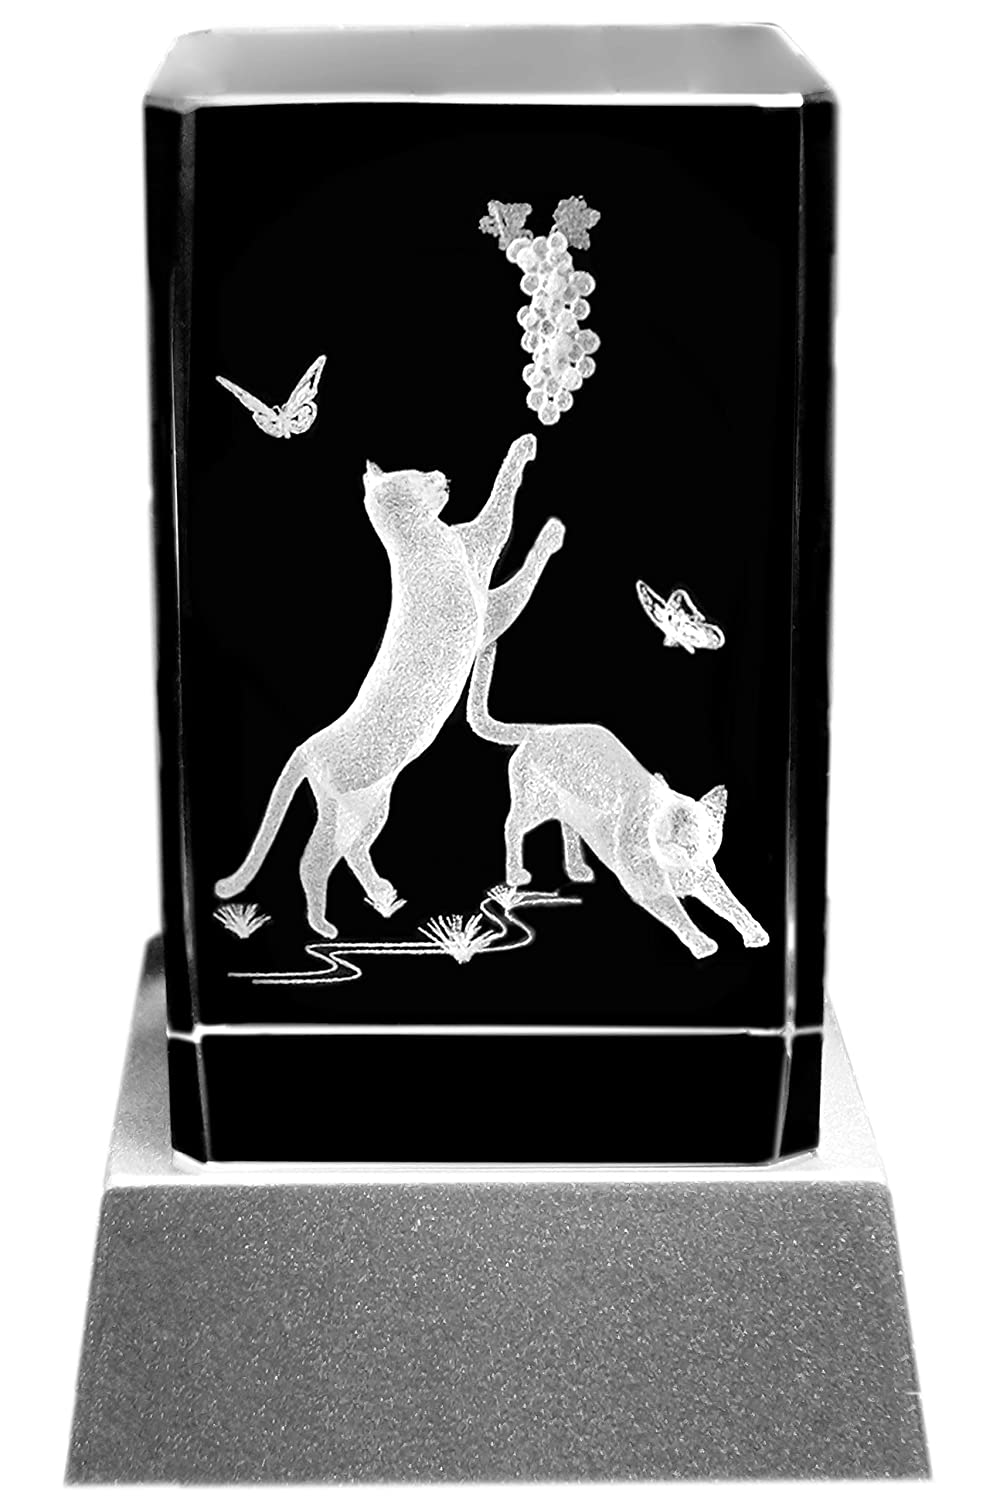 Kaltner Präsente Mood Light - a very special gift: LED candle / crystal glass block / 3D laser engraving playing cats Cat babies